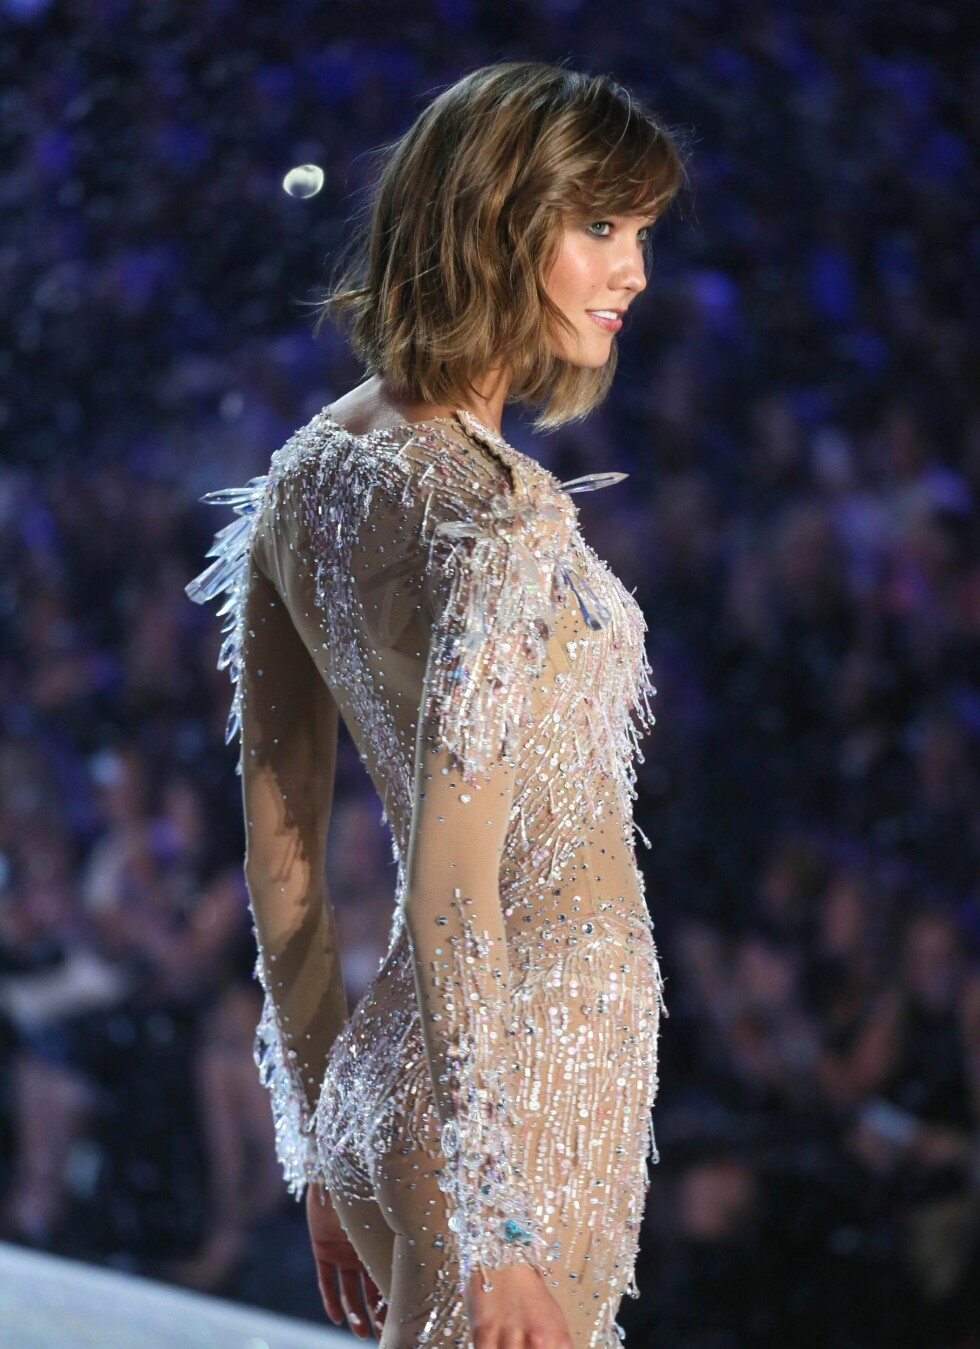 Karlie Kloss on the catwalk *** Local Caption *** 10.3370092fo Foto: REX/Erik Pendzich/Rex/All Over P